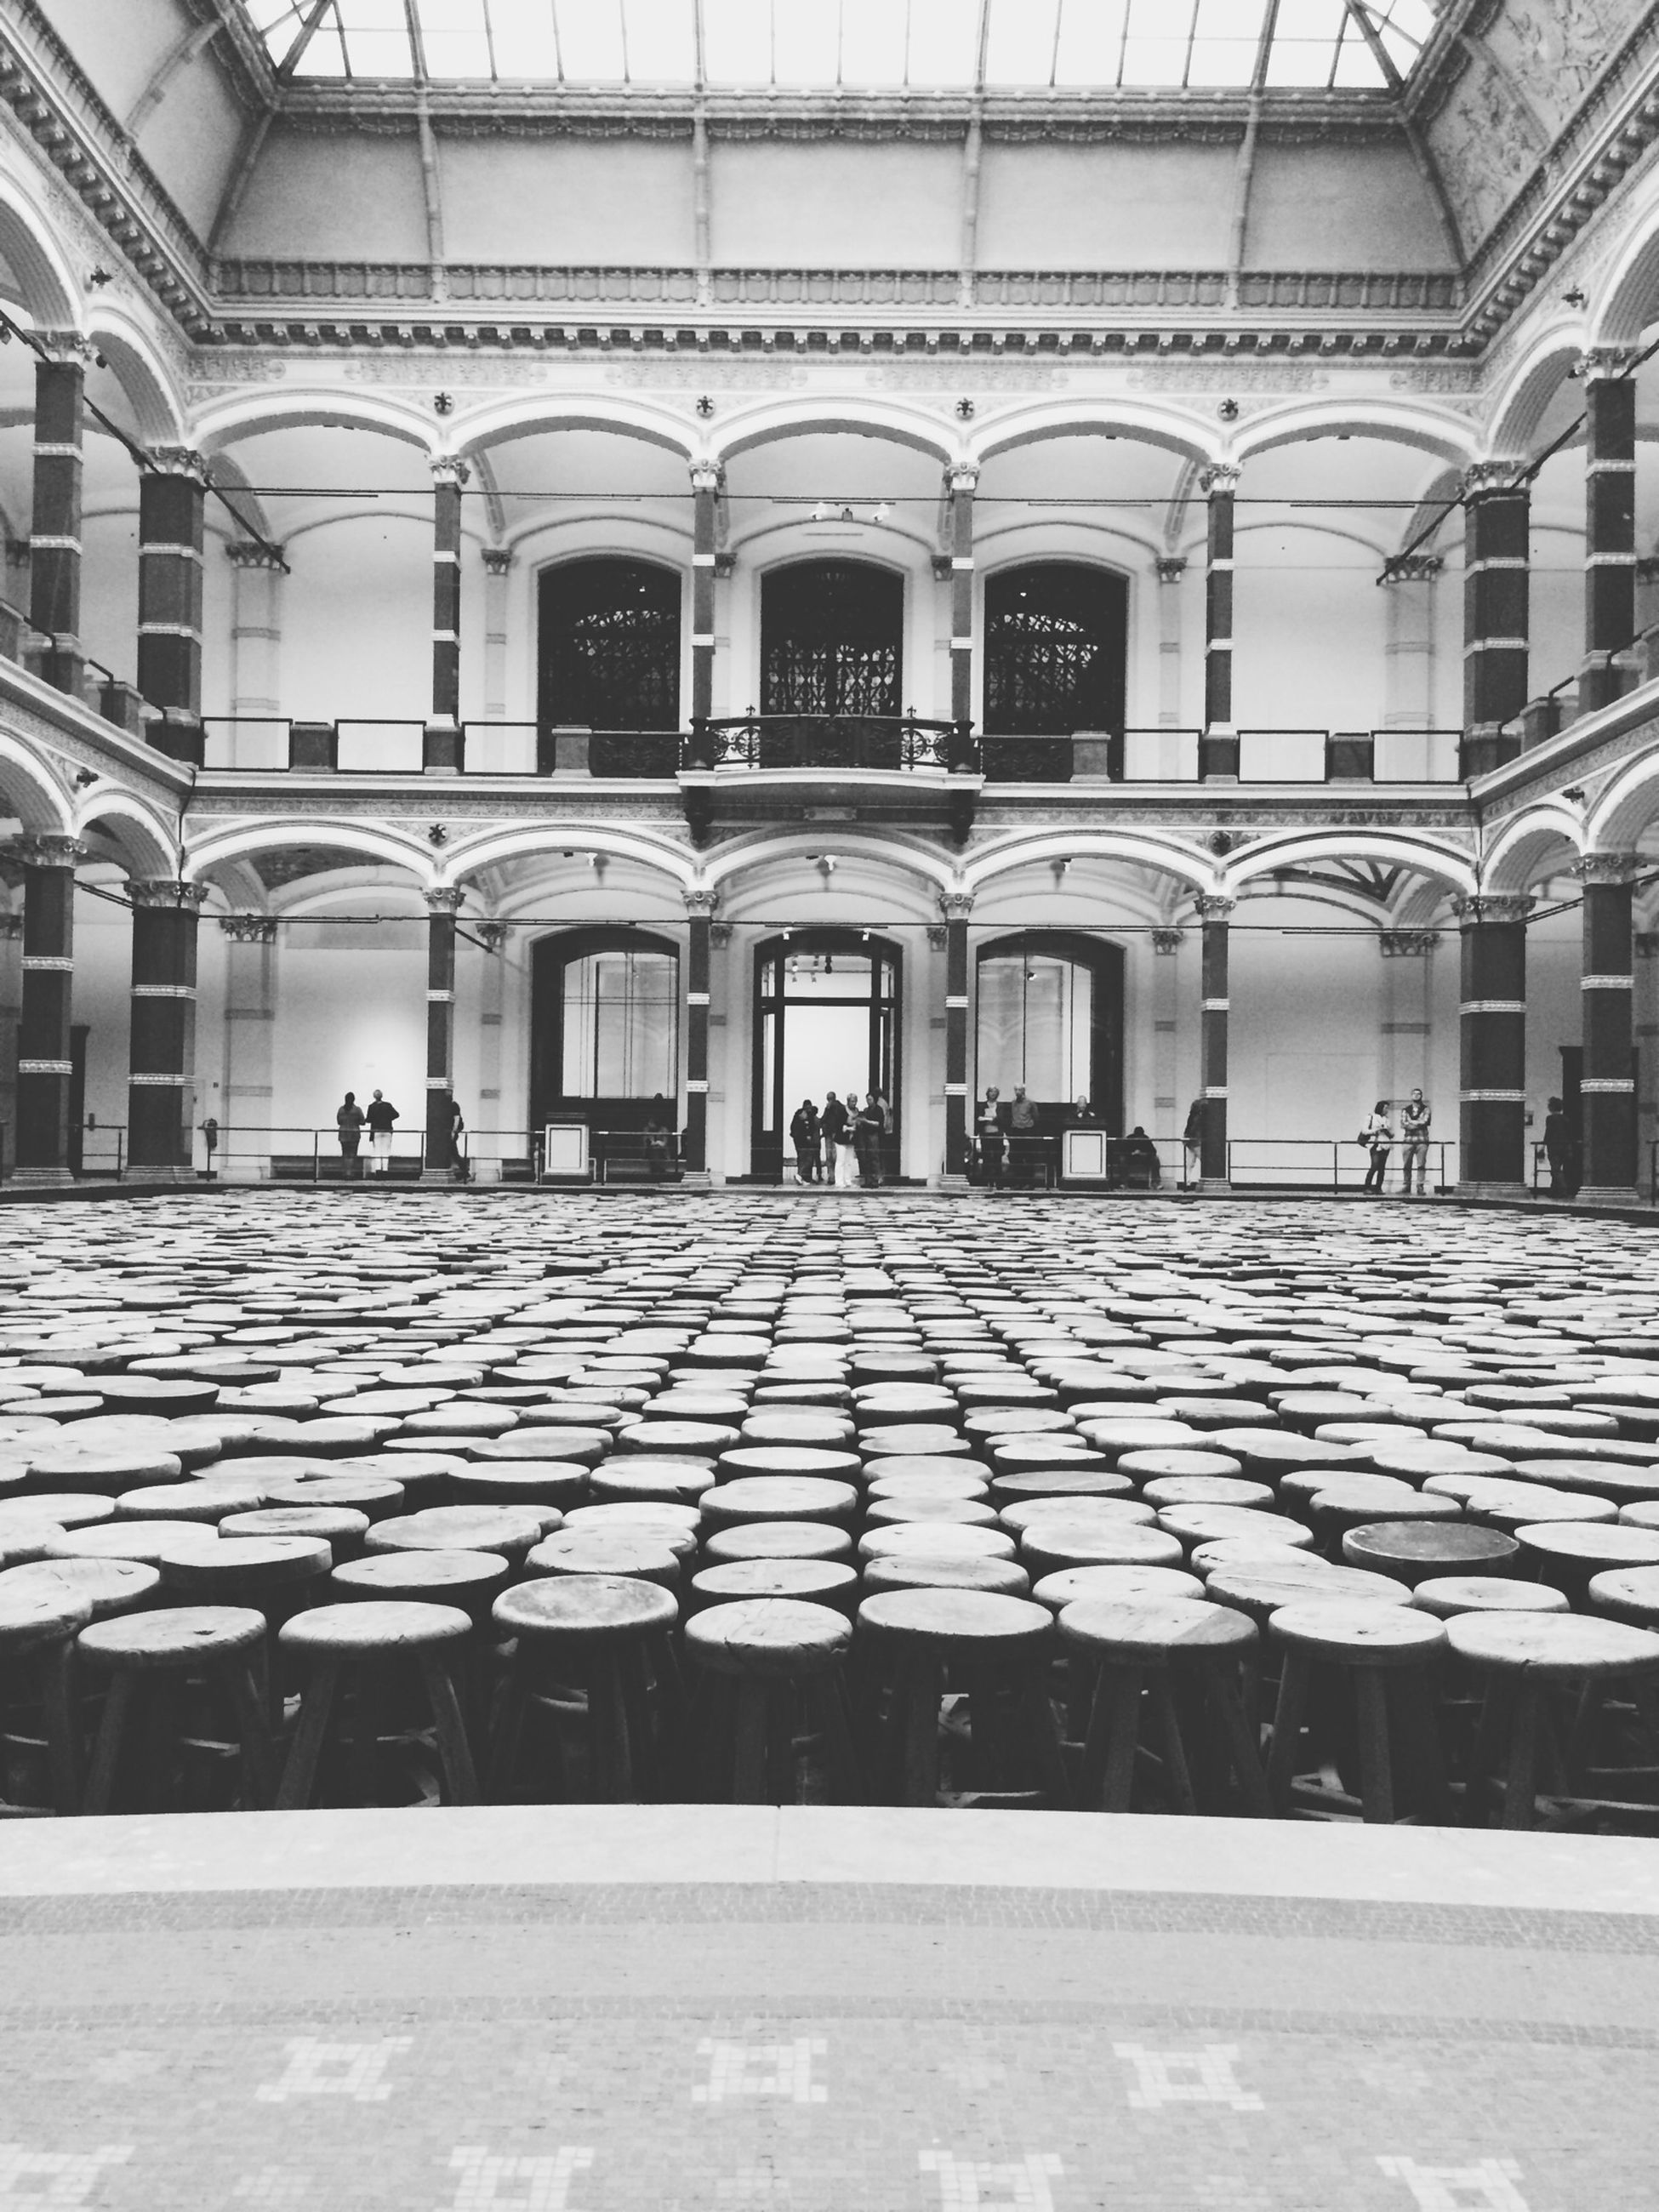 architecture, built structure, building exterior, arch, window, building, in a row, architectural column, indoors, incidental people, empty, day, facade, flooring, architectural feature, cobblestone, sunlight, repetition, city, no people